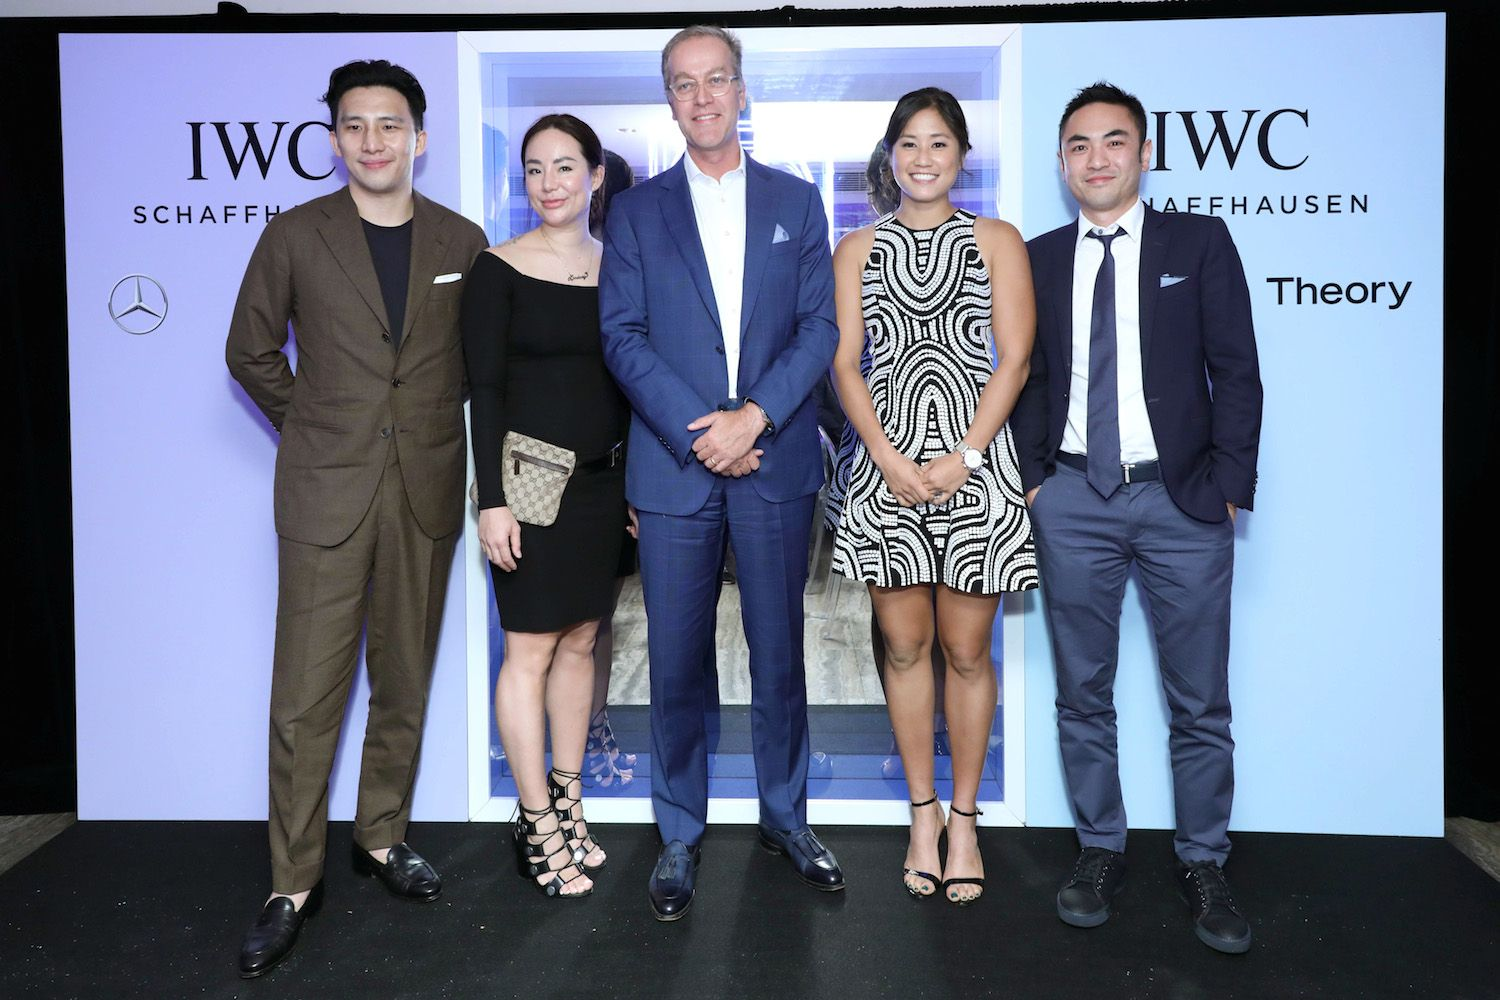 Wesley Ng, Lindsay Jang, Goris Verburg, Laurel Chor and Aaron Lee